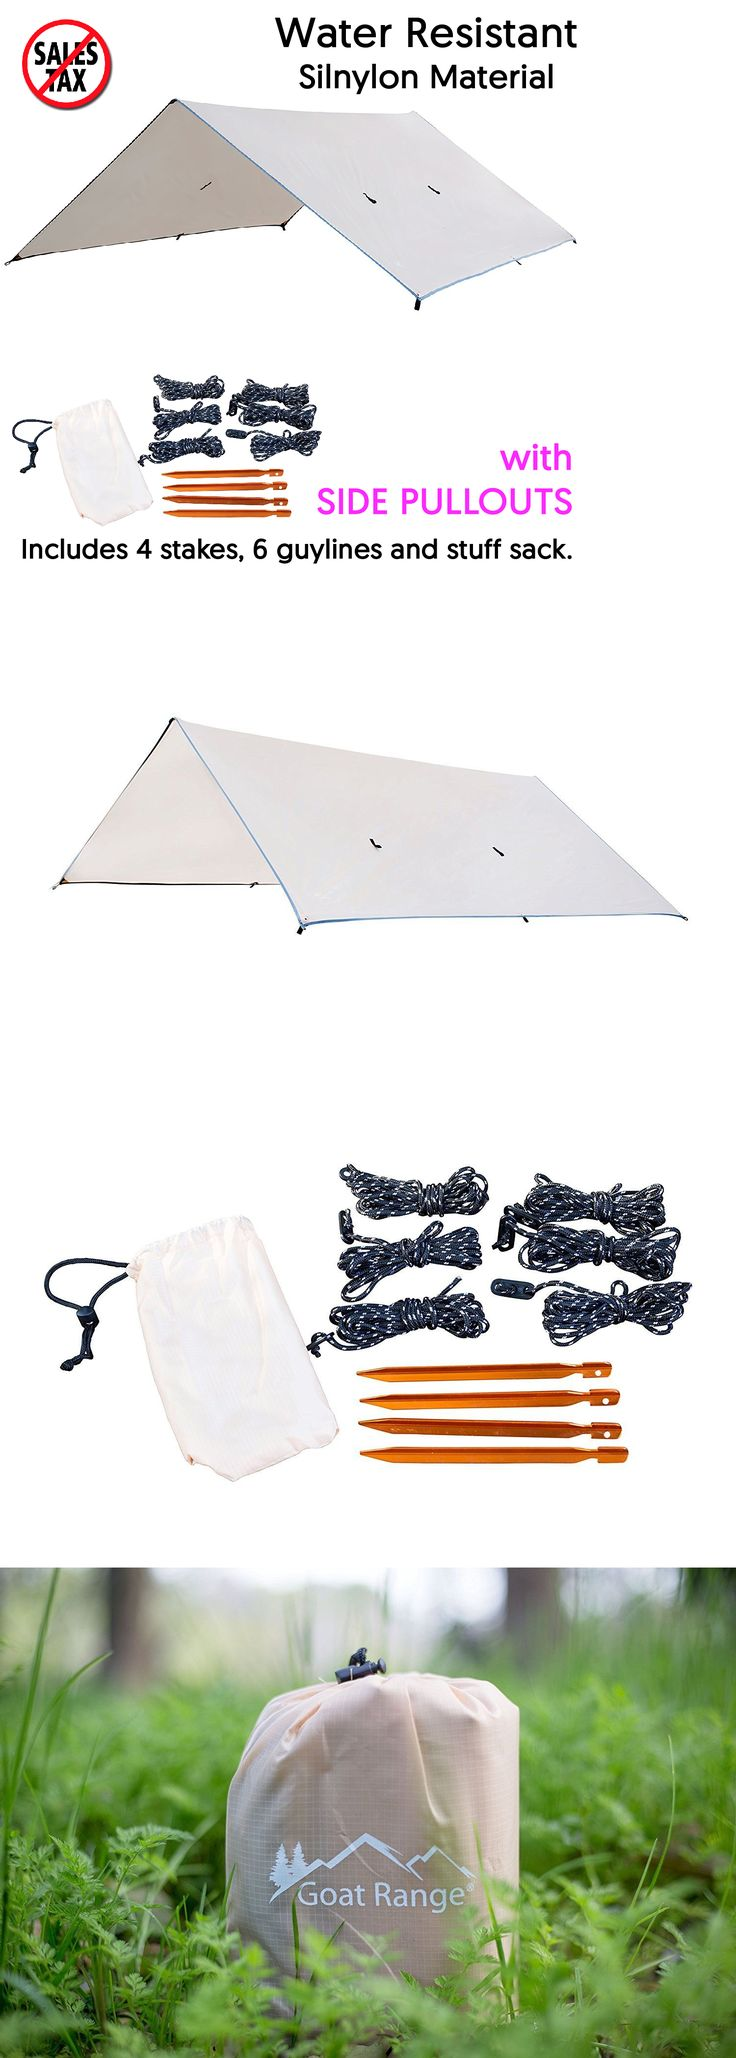 Canopies and Shelters 179011: Water Resistant Lightweight Tarp Tent Camp Outdoor Shelter Camping Canopy Cover -> BUY IT NOW ONLY: $31.08 on eBay!